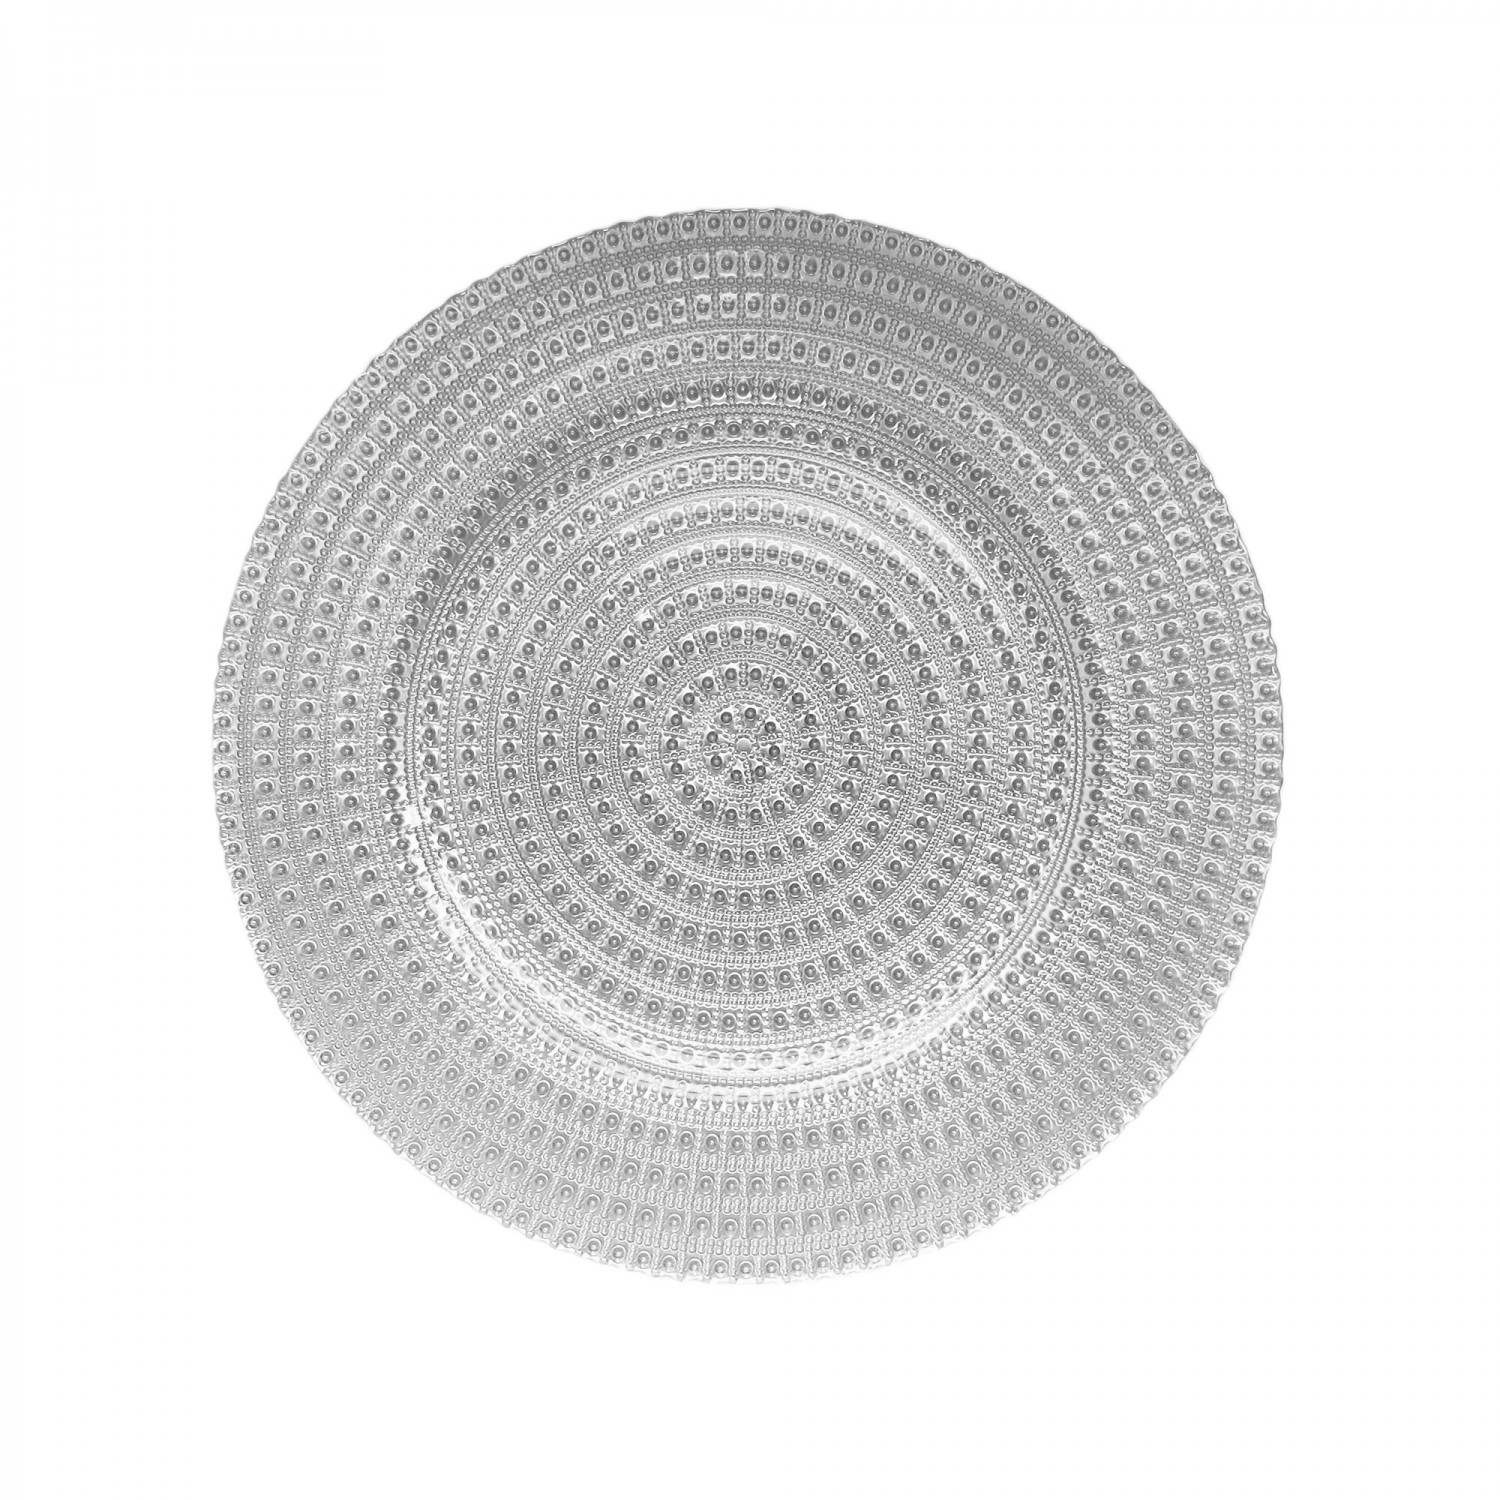 The Jay Companies 1470358 Round Silver Tripoli Glass Charger Plate 13""